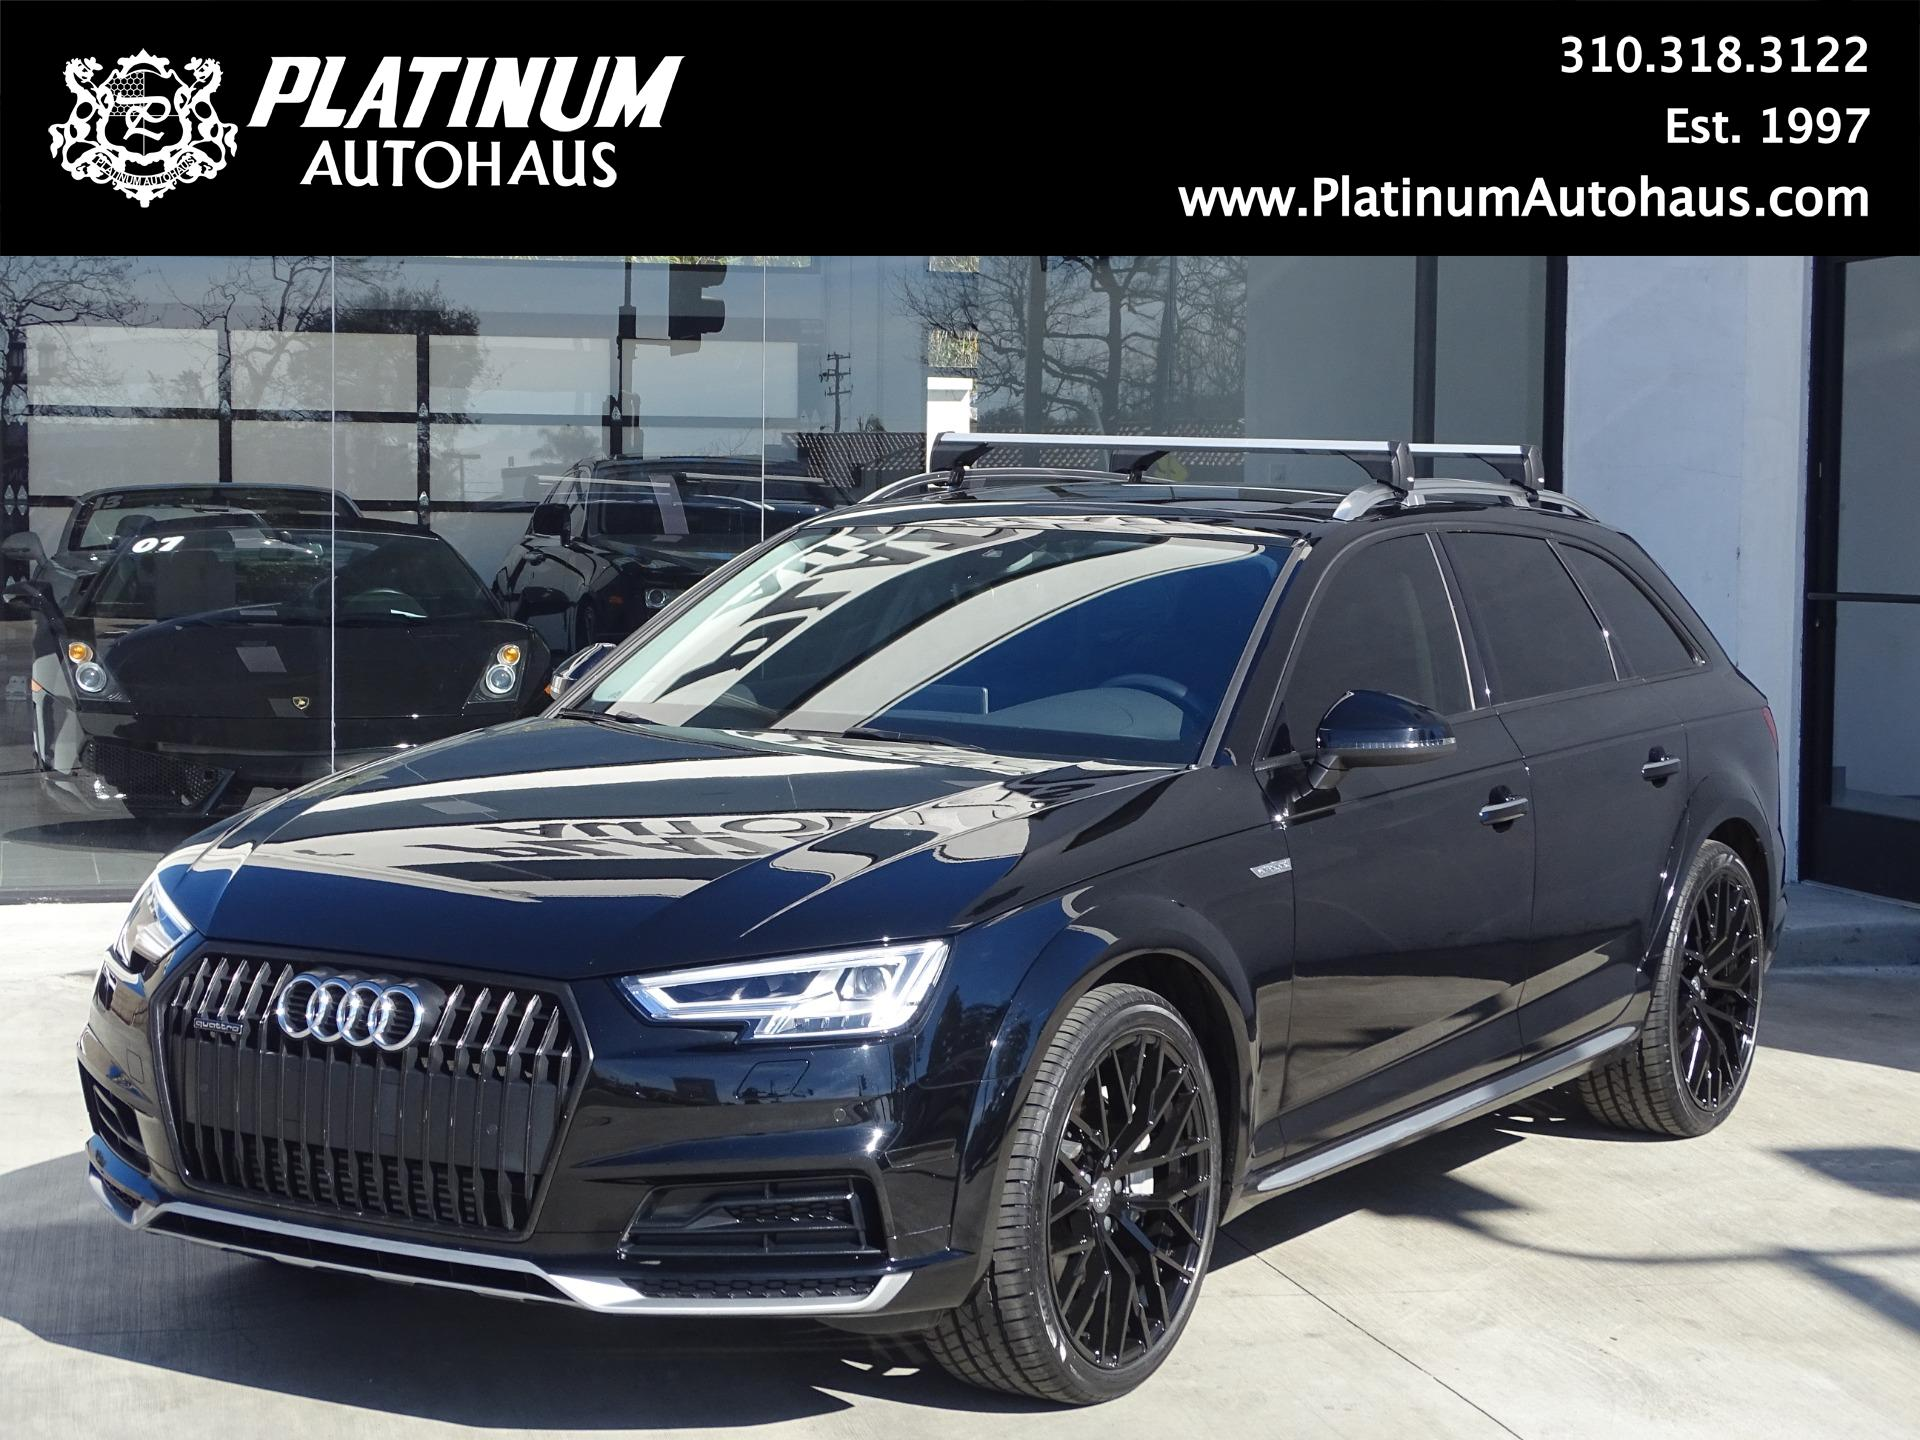 Audi Dealership Near Me >> 2017 Audi A4 allroad 2.0T quattro Premium Plus Stock ...